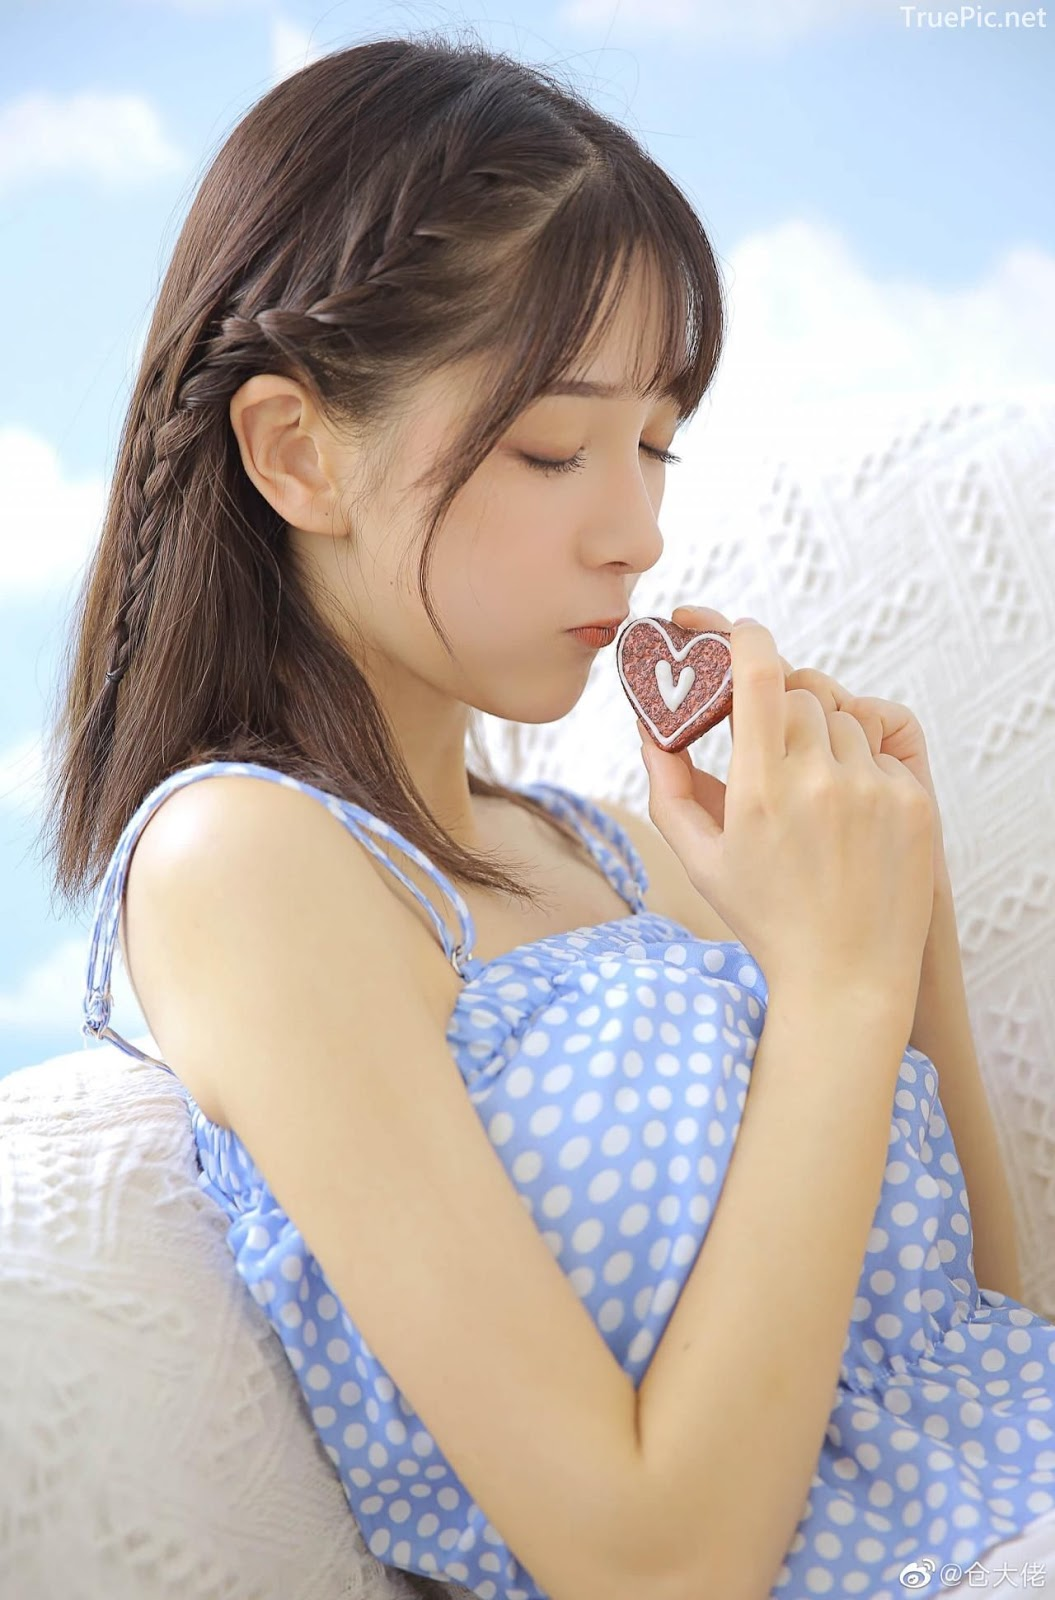 Chinese cute girl - She is a Beautiful sweet candy girl - TruePic.net - Picture 3